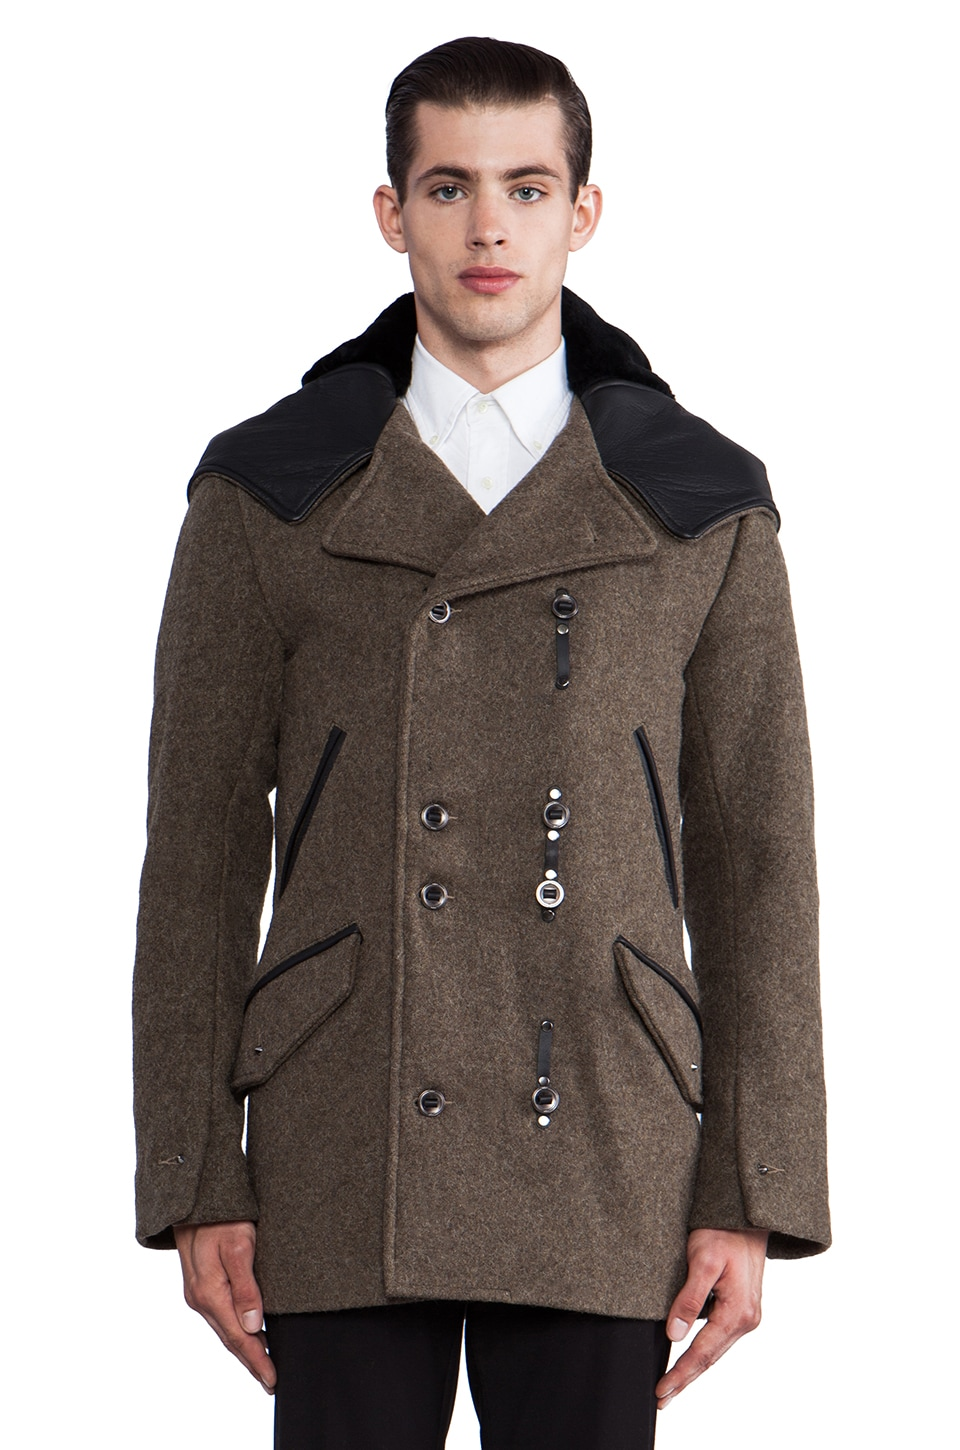 KRANE Asher Hooded Peacoat in Olive